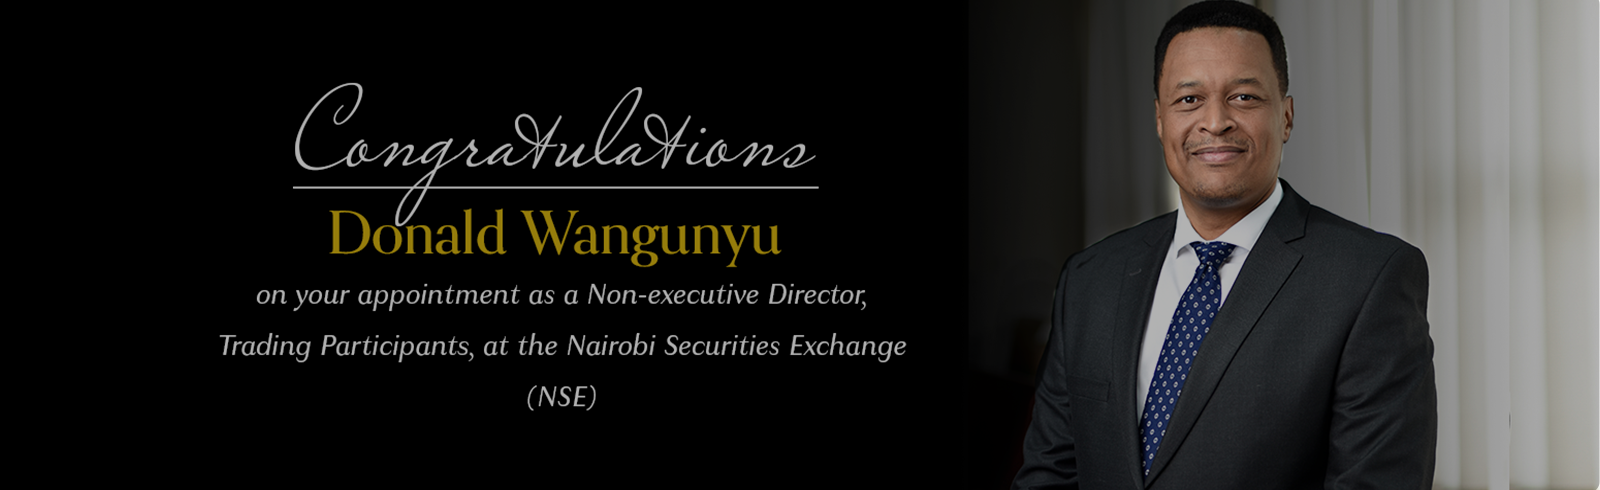 FourFront Management CEO Donald Wangunyu appointed Non-Executive Director at the Nairobi Securities Exchange (NSE)